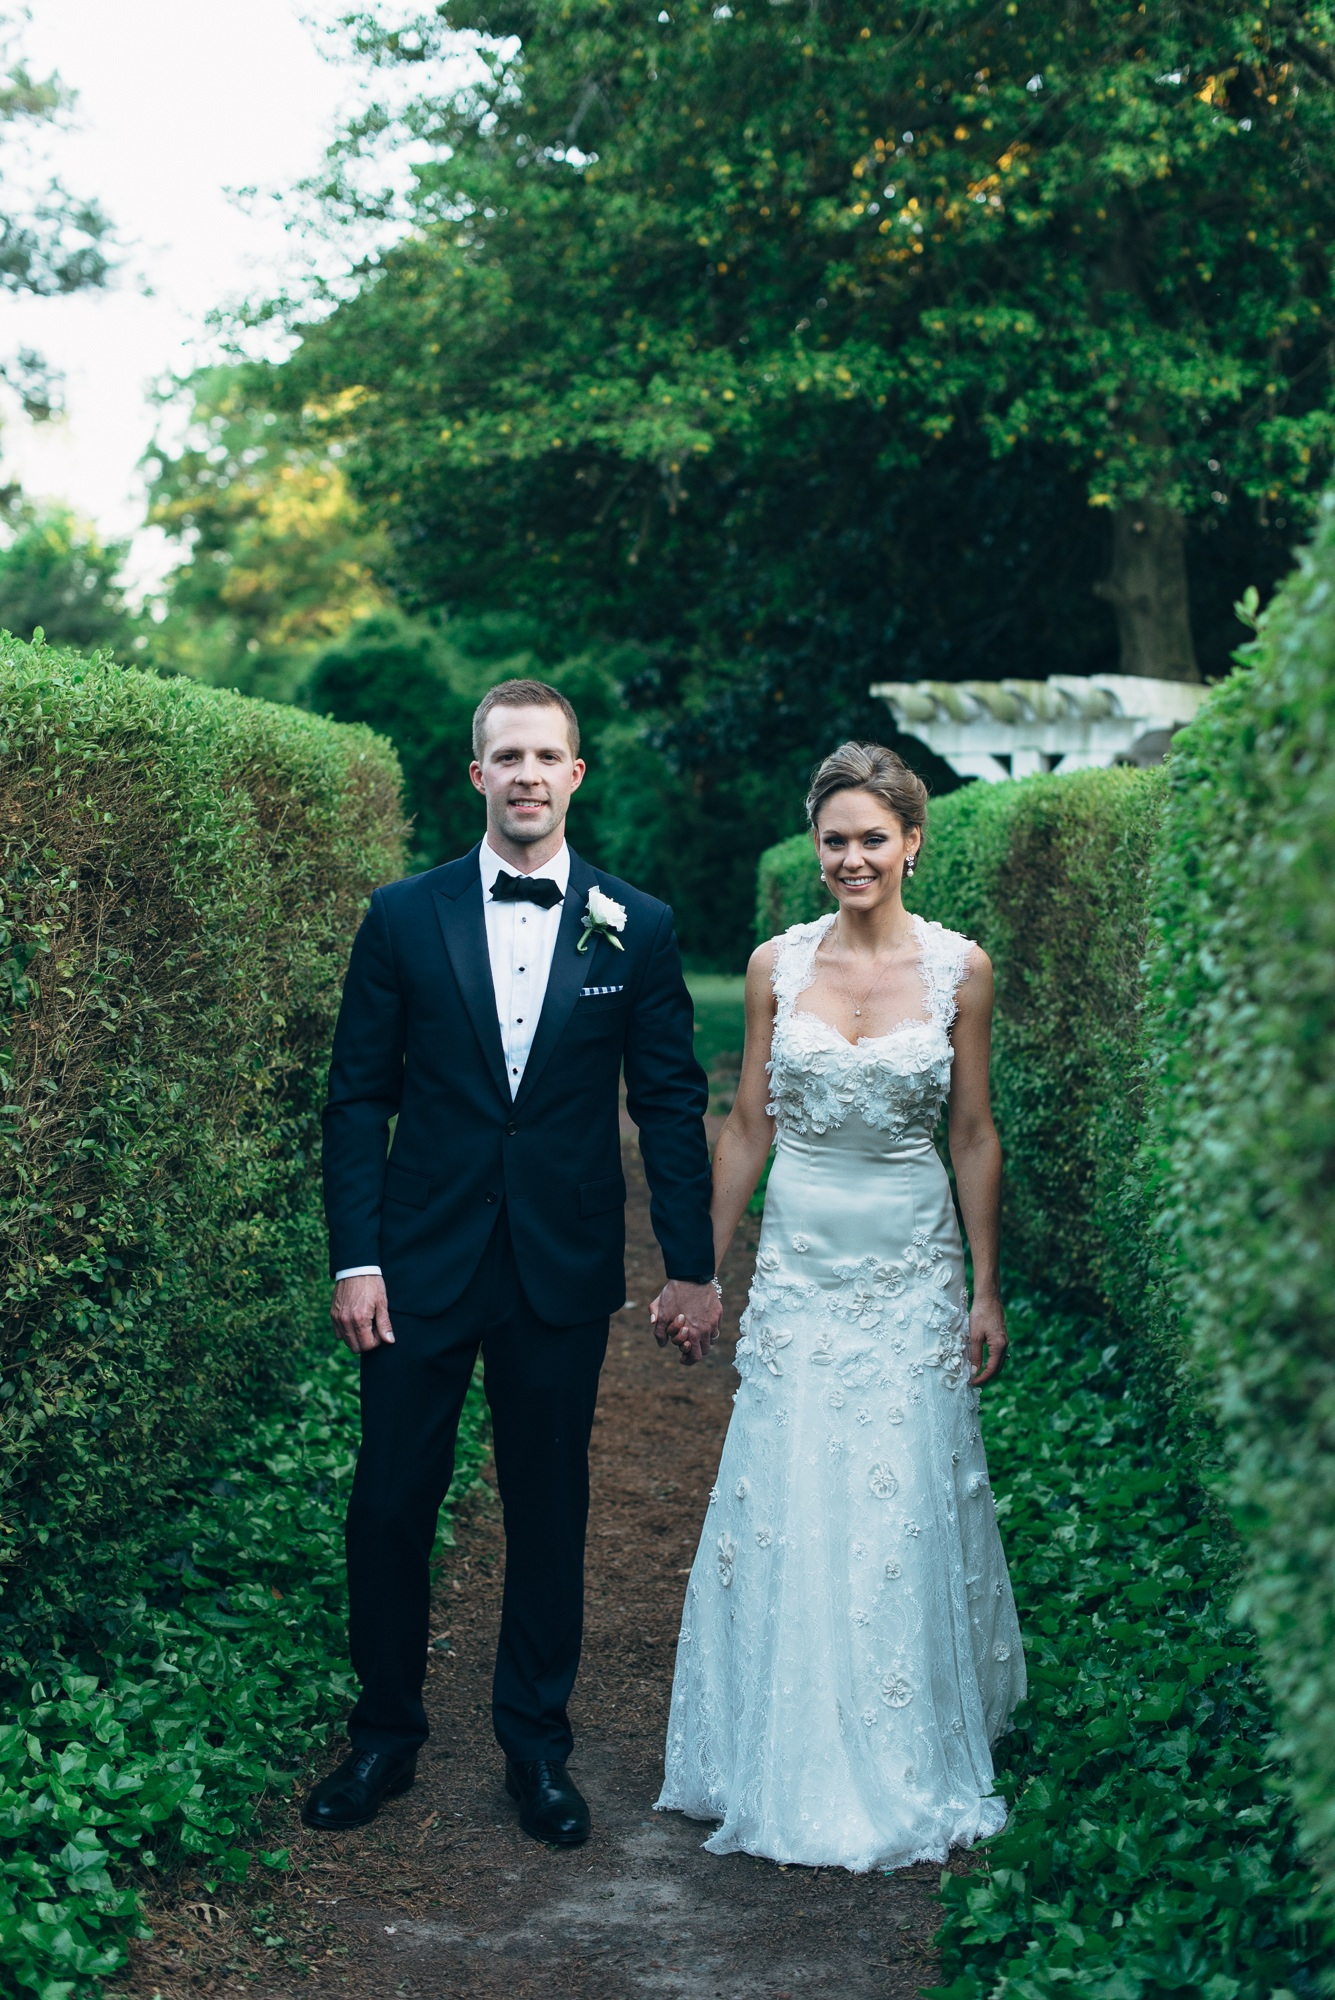 charlotte-wedding-28-08032015-ky